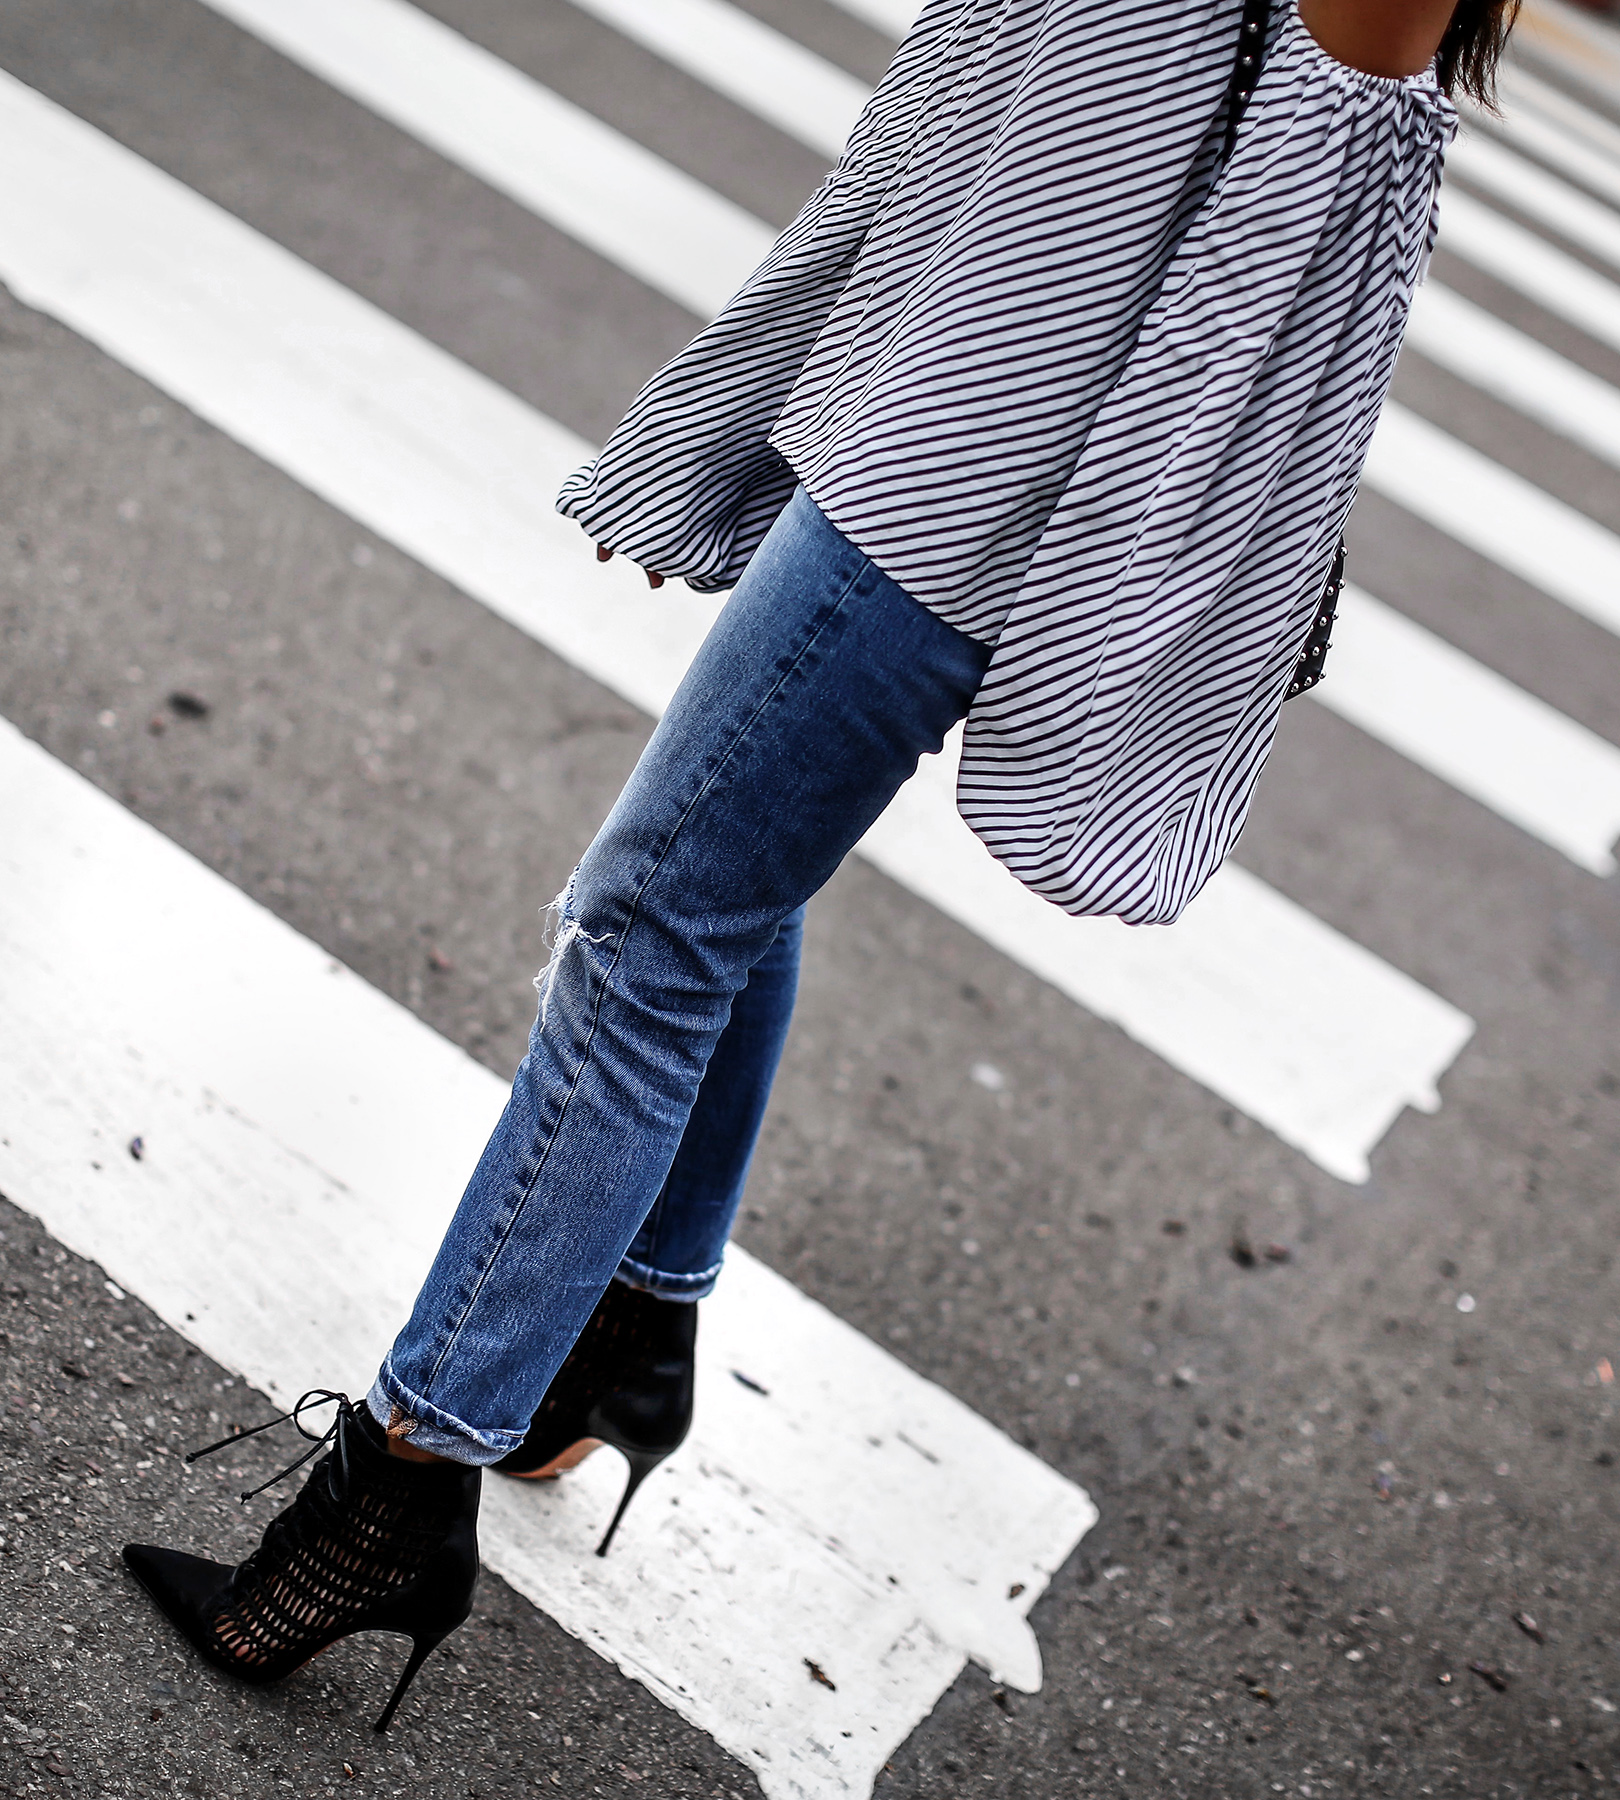 Schutz_Lace_Up_Booties_Distressed_Levis_Jeans_MLM_Striped_Off_The_Shoulder_Top.jpg